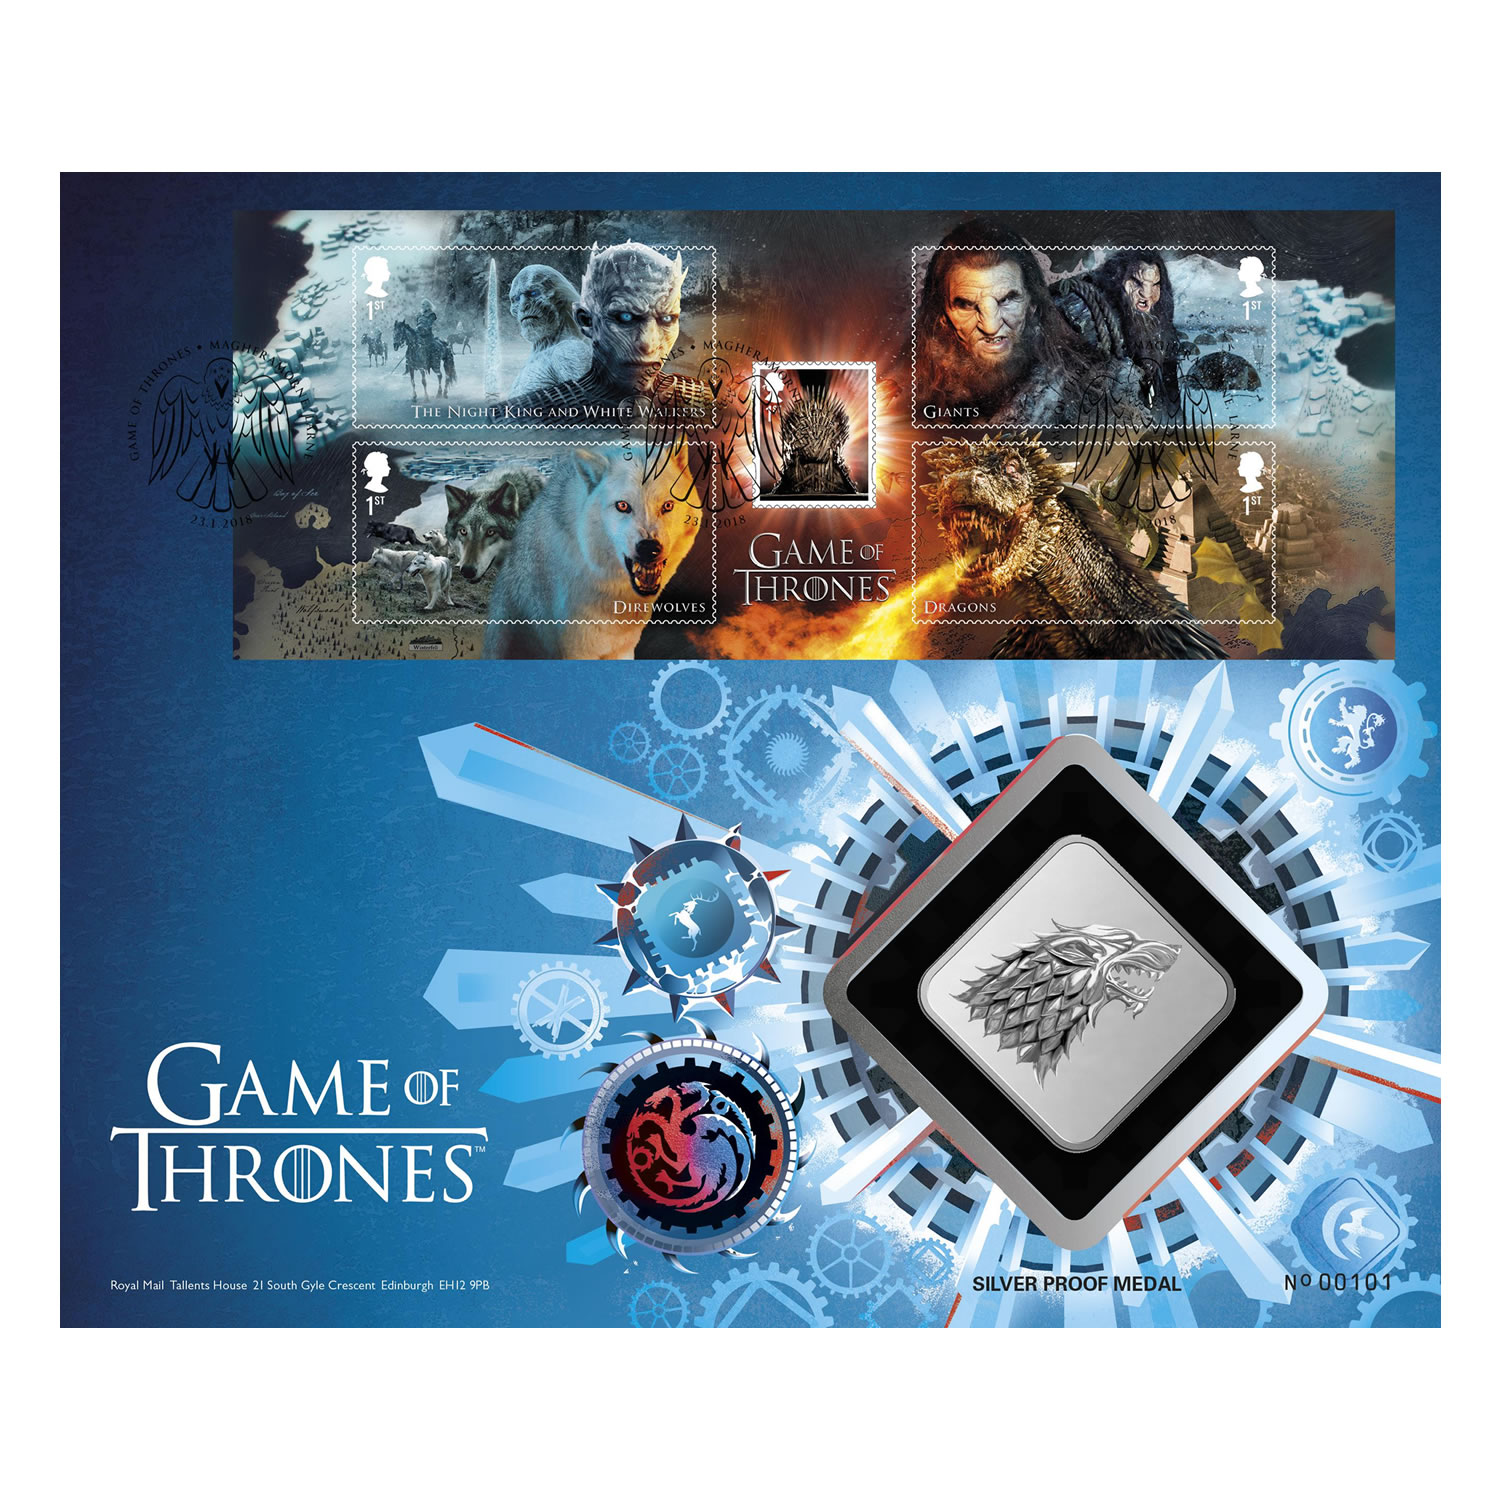 Game of Thrones House Stark Silver Proof Medal Cover